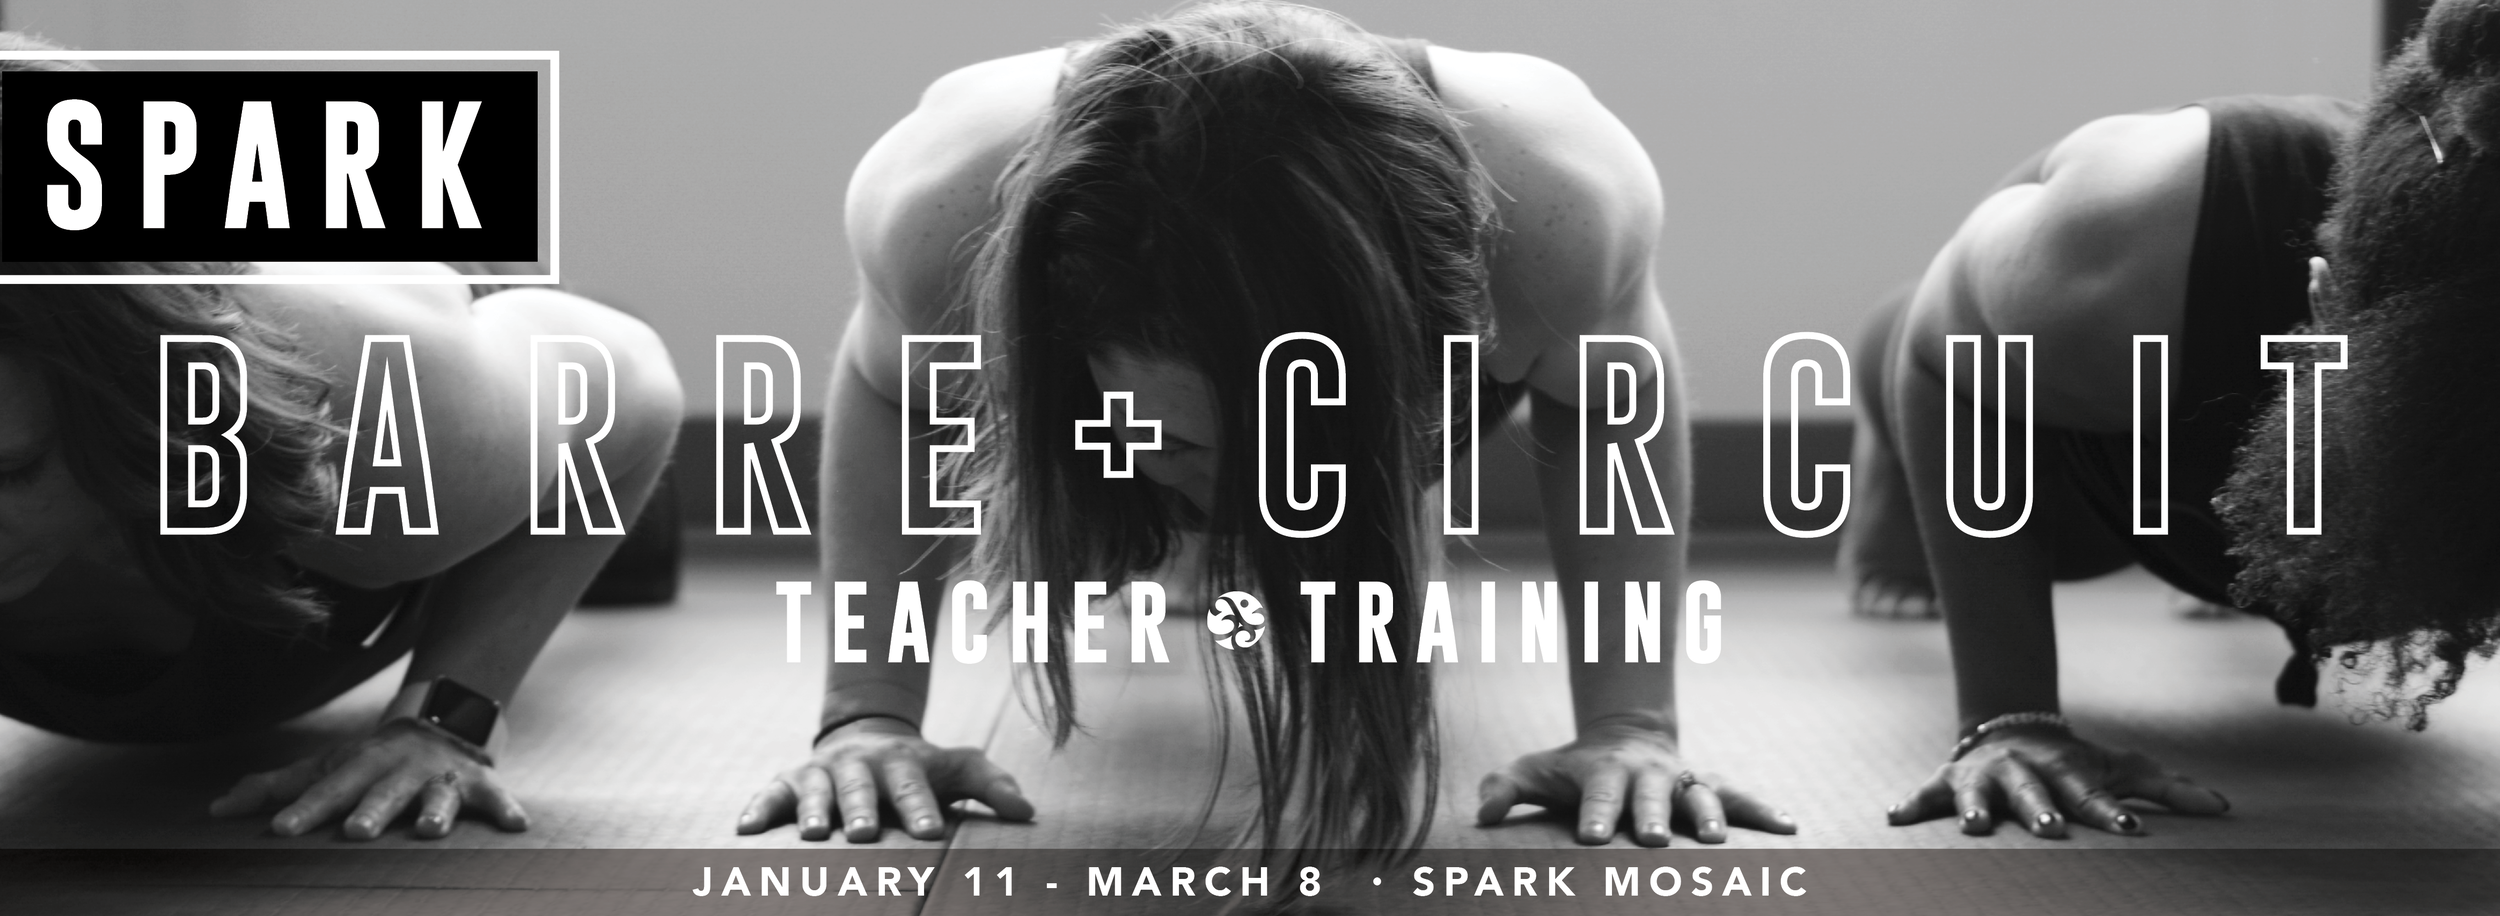 Spark Barre + Circuit Teacher Training (Jan 2020)